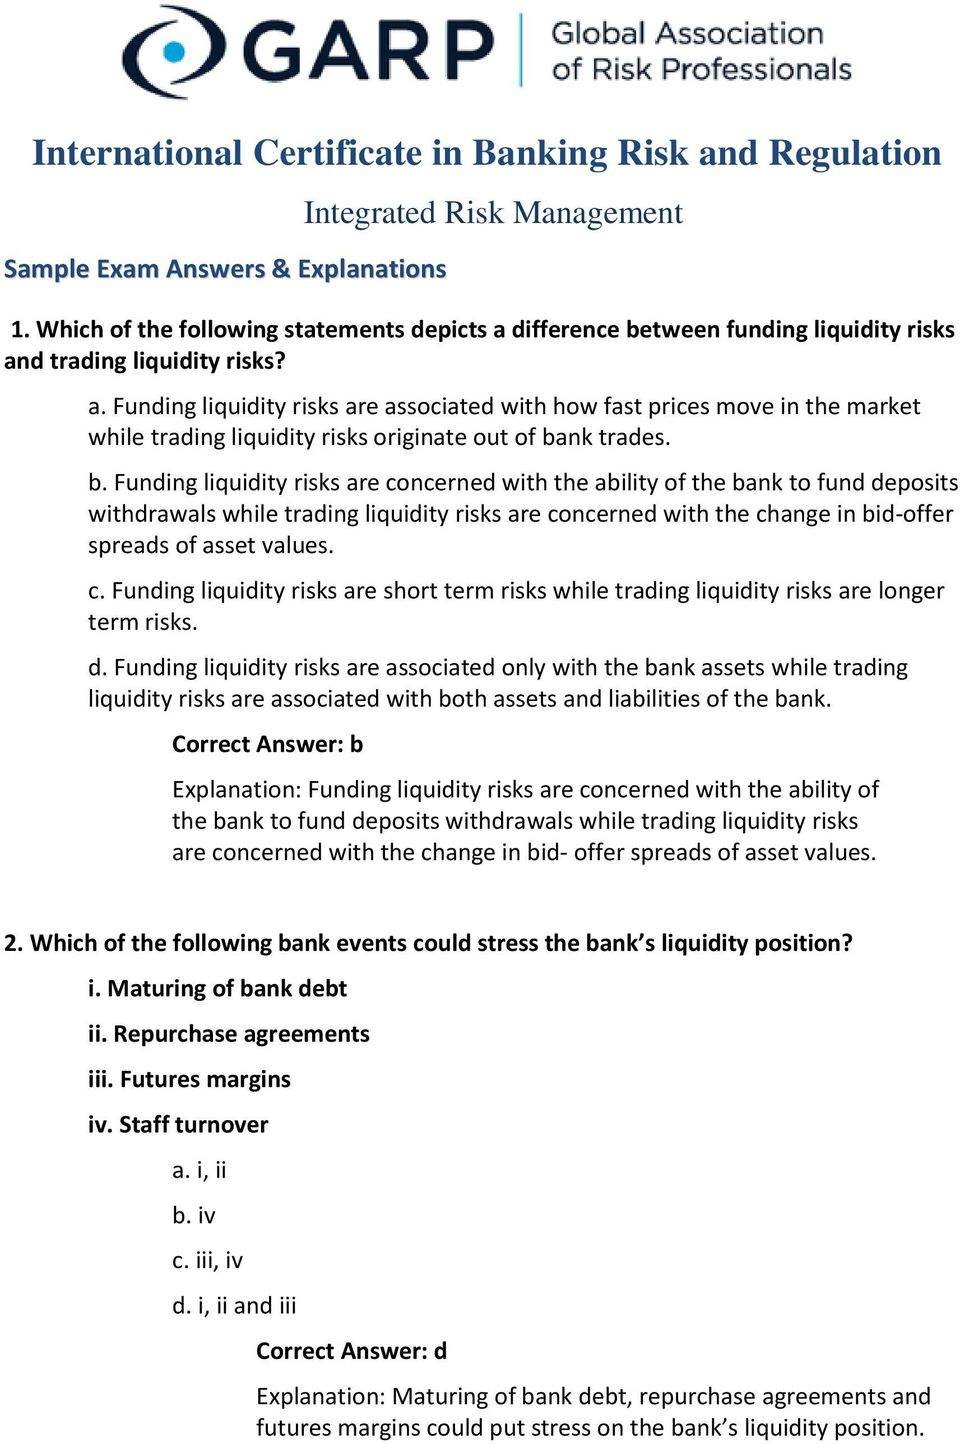 b. Funding liquidity risks are concerned with the ability of the bank to fund deposits withdrawals while trading liquidity risks are concerned with the change in bid-offer spreads of asset values. c. Funding liquidity risks are short term risks while trading liquidity risks are longer term risks.